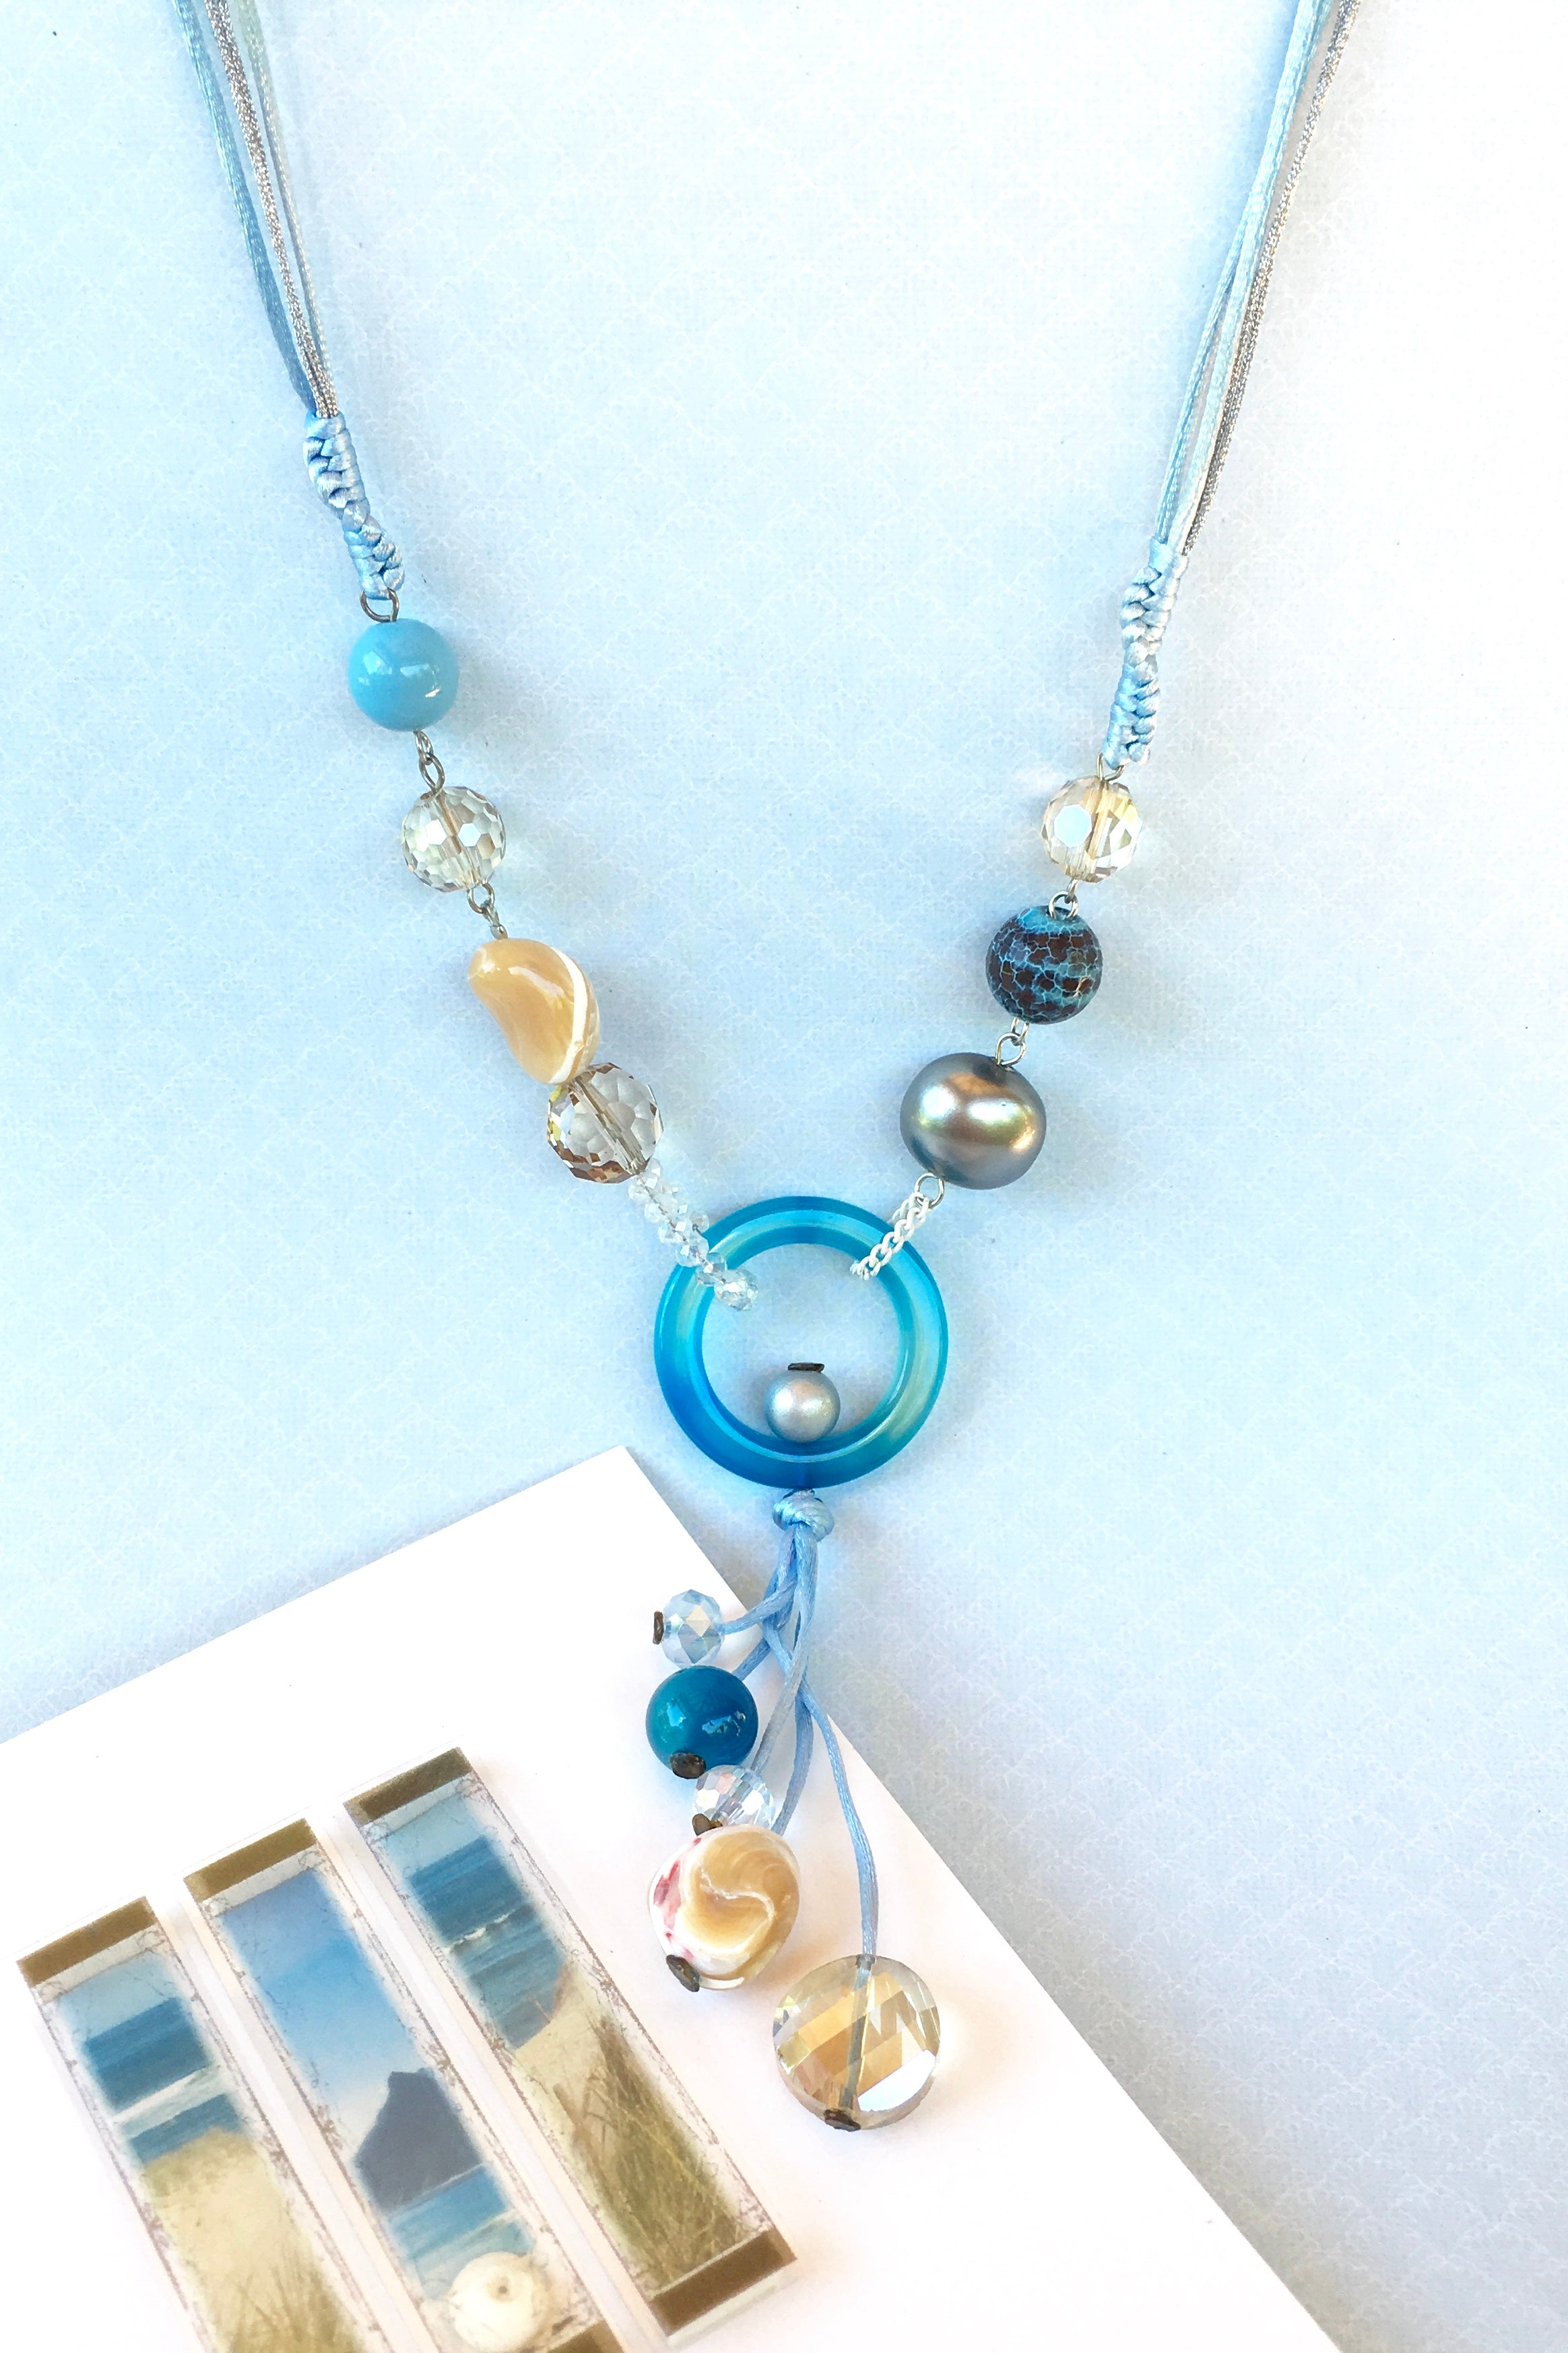 Necklace Greco Turquoise with crystalline beads on a silk cord